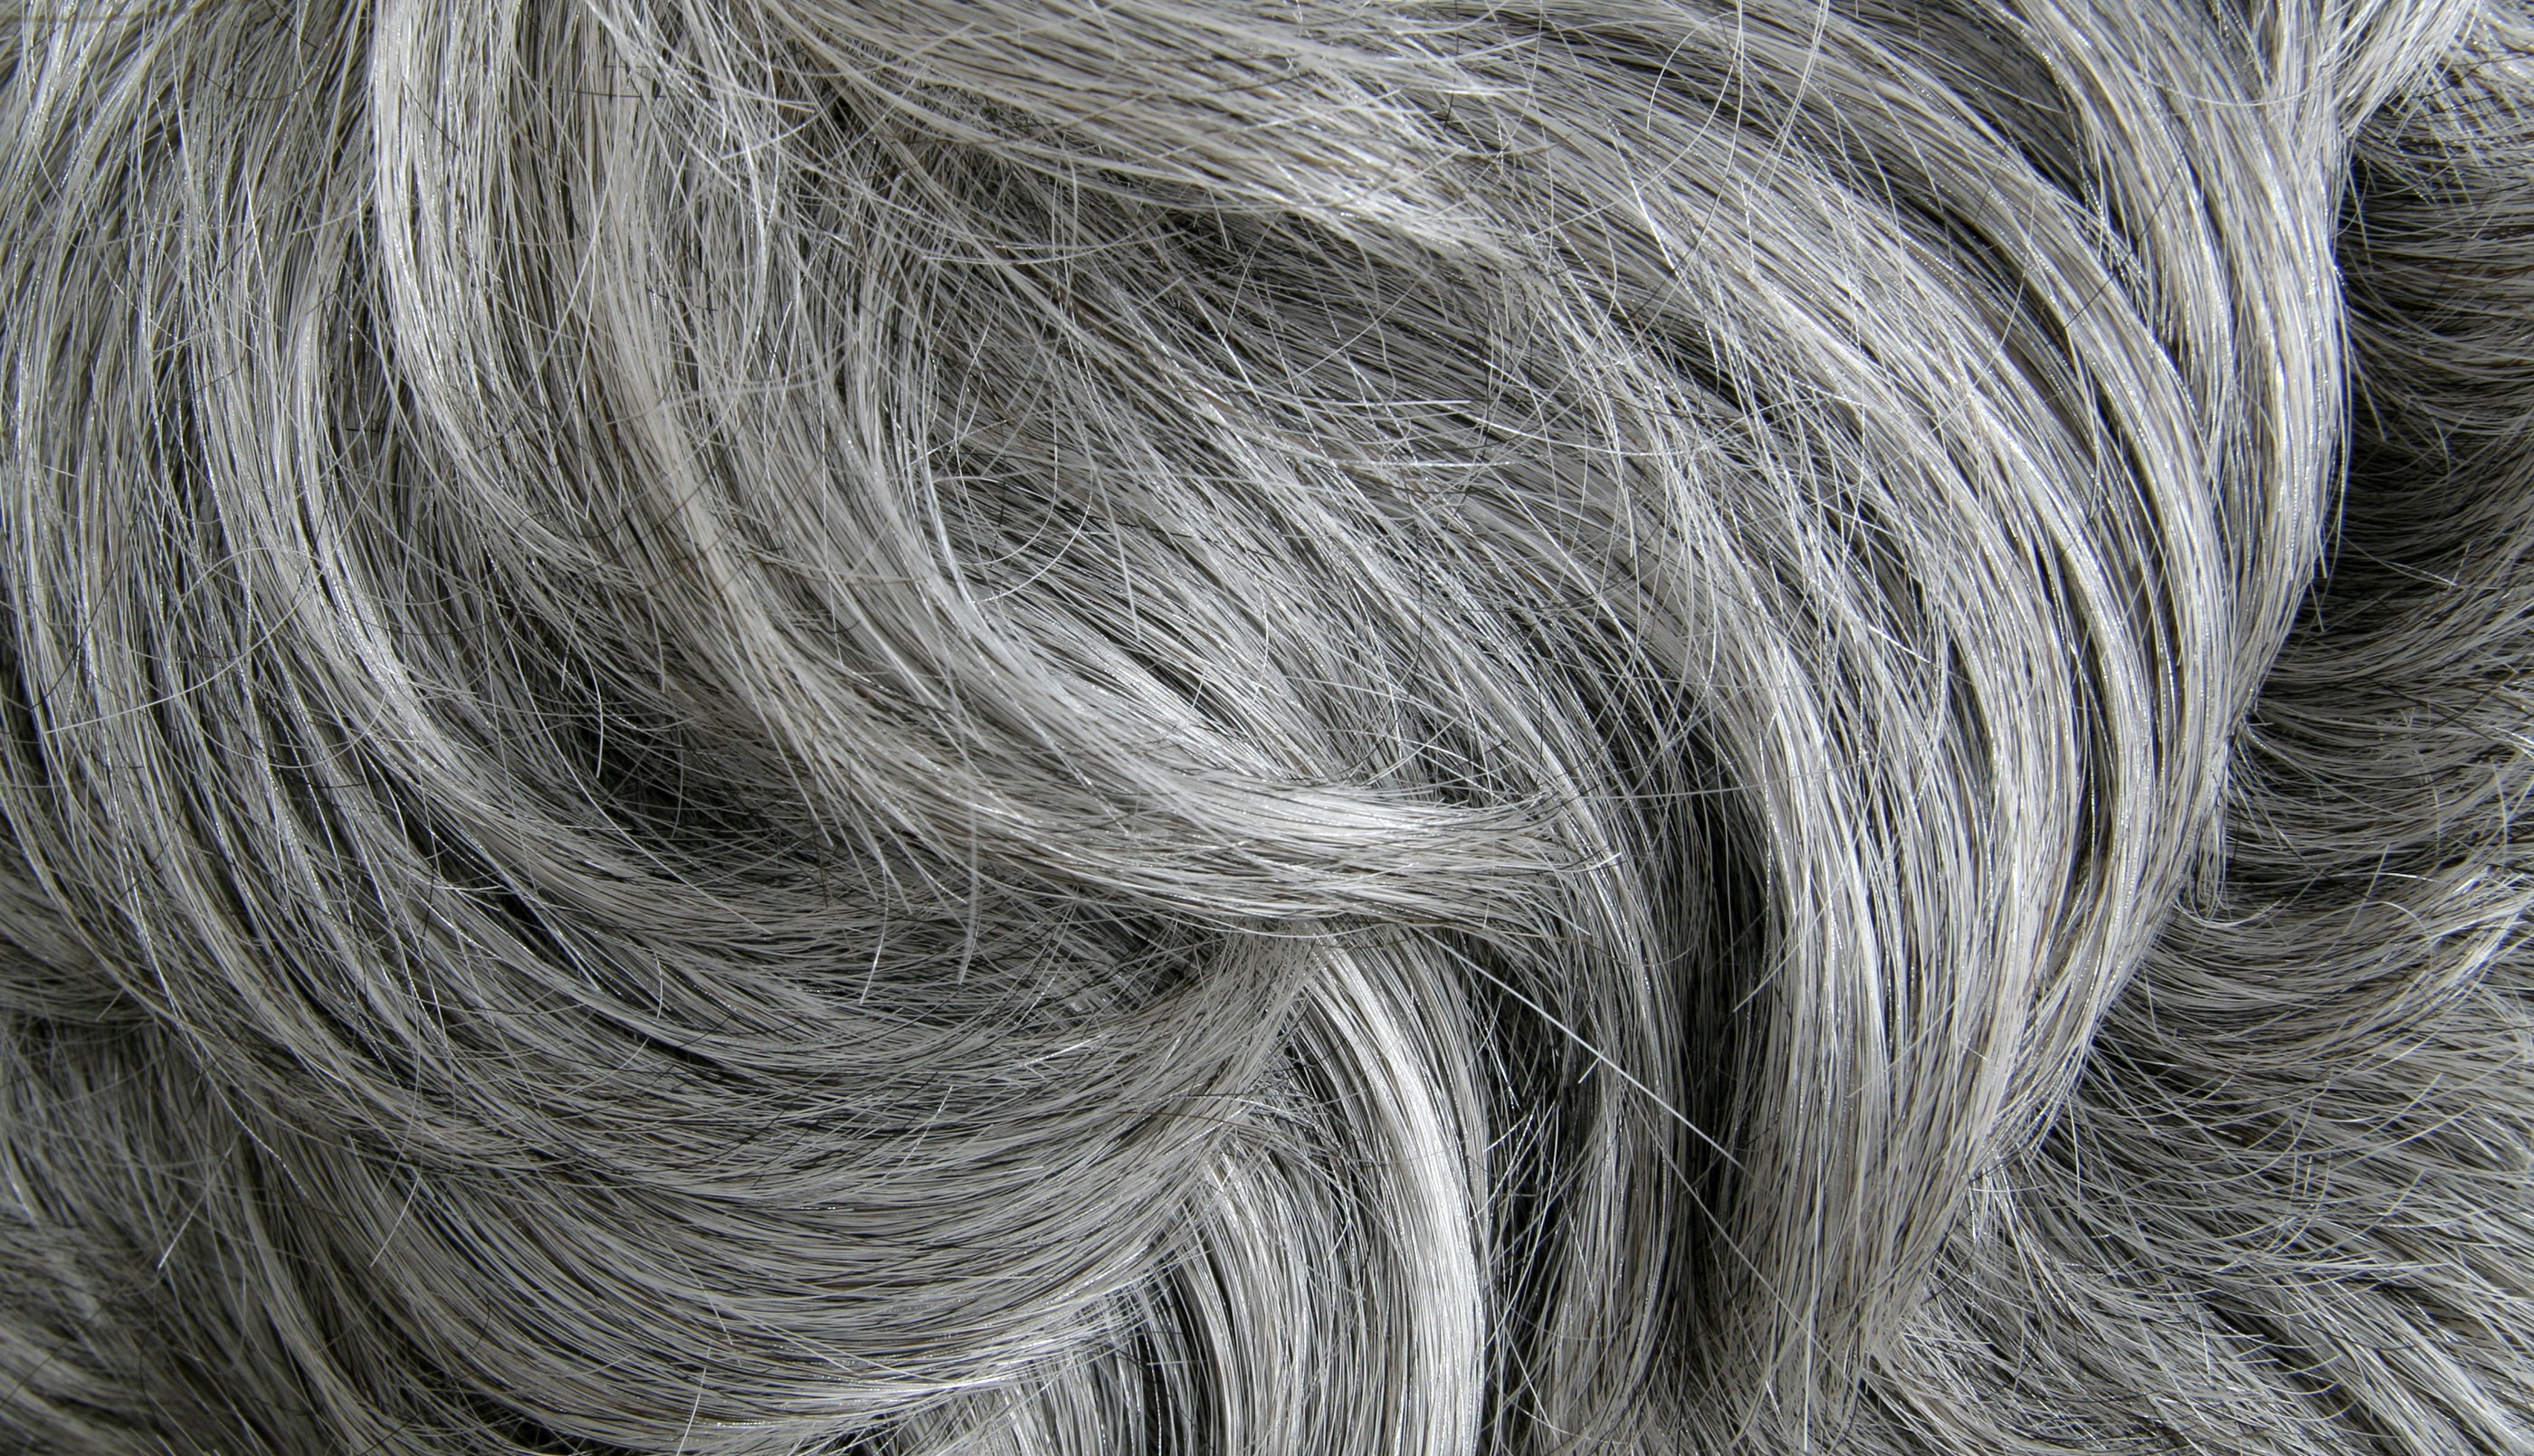 A close-up image of gray hair